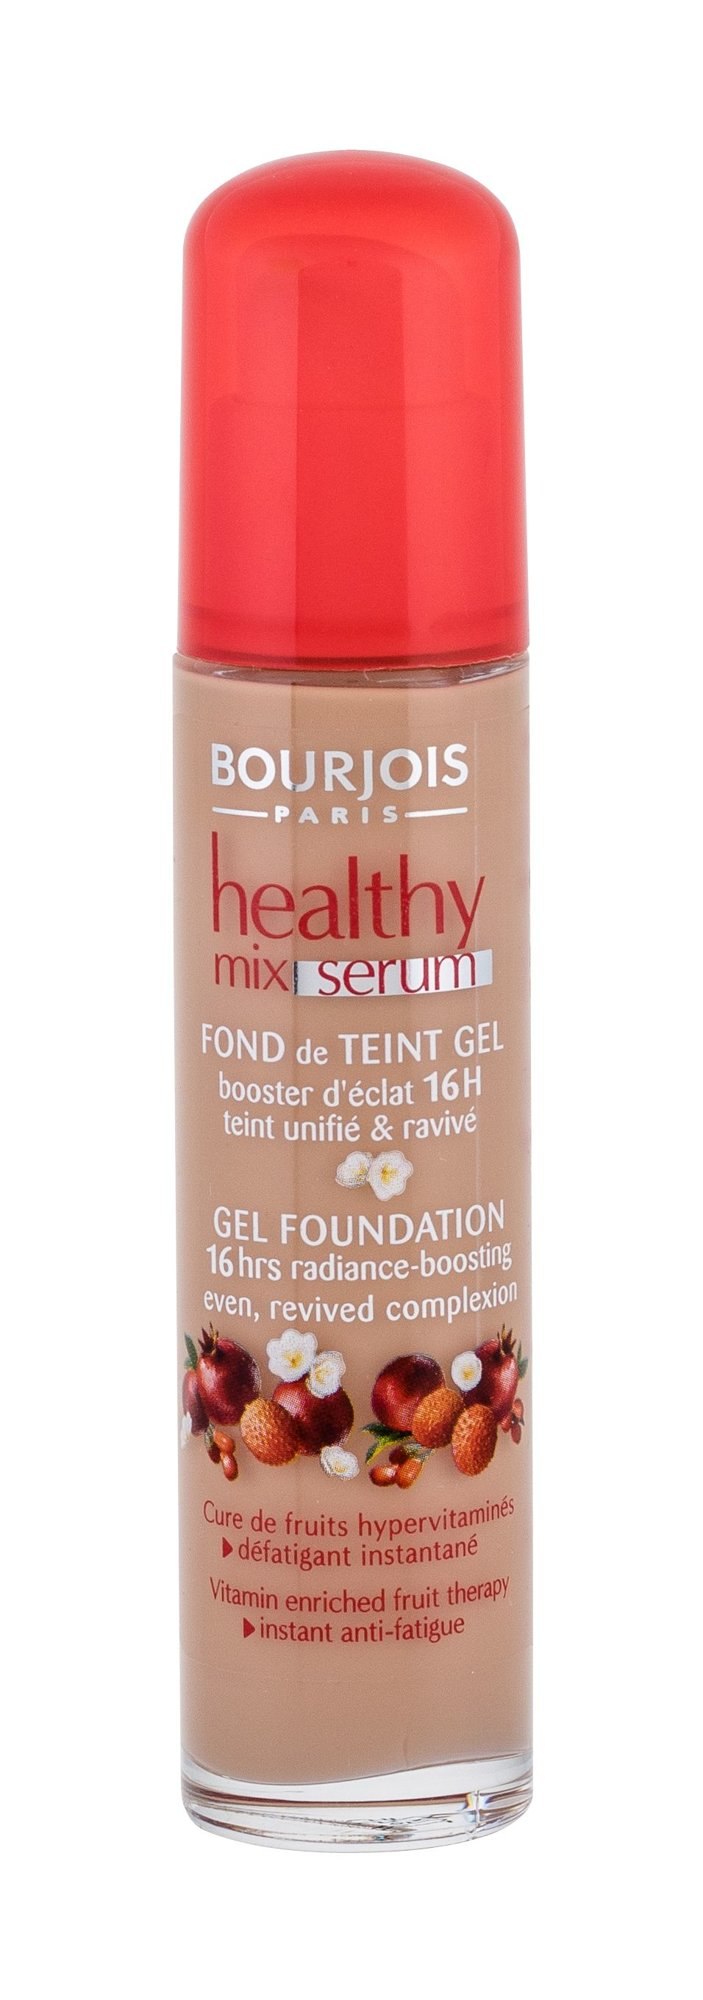 BOURJOIS Paris Healthy Mix Serum Gel Foundation 55 Cosmetic 30ml 55 Dark Beige